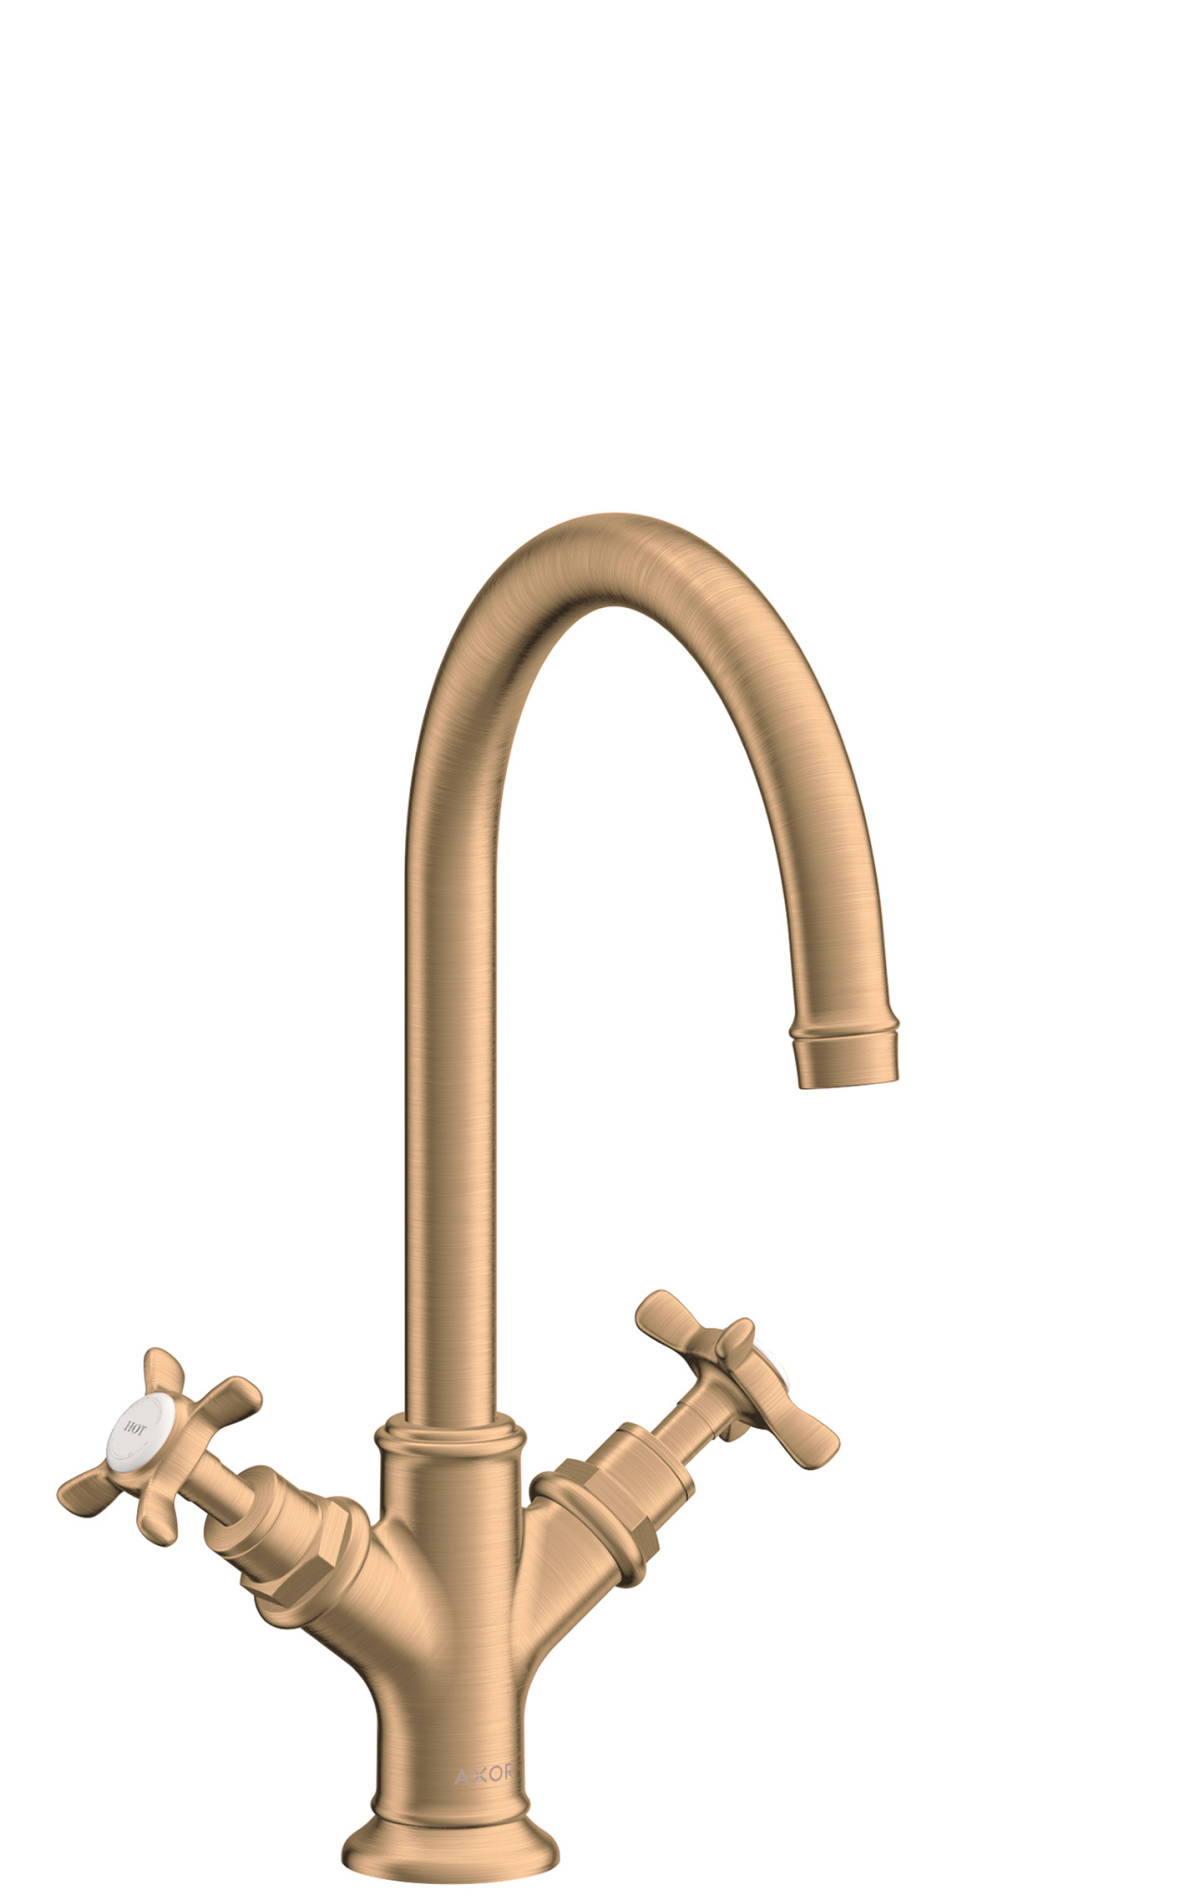 2-handle basin mixer 210 with cross handles and pop-up waste set, Brushed Bronze, 16502140